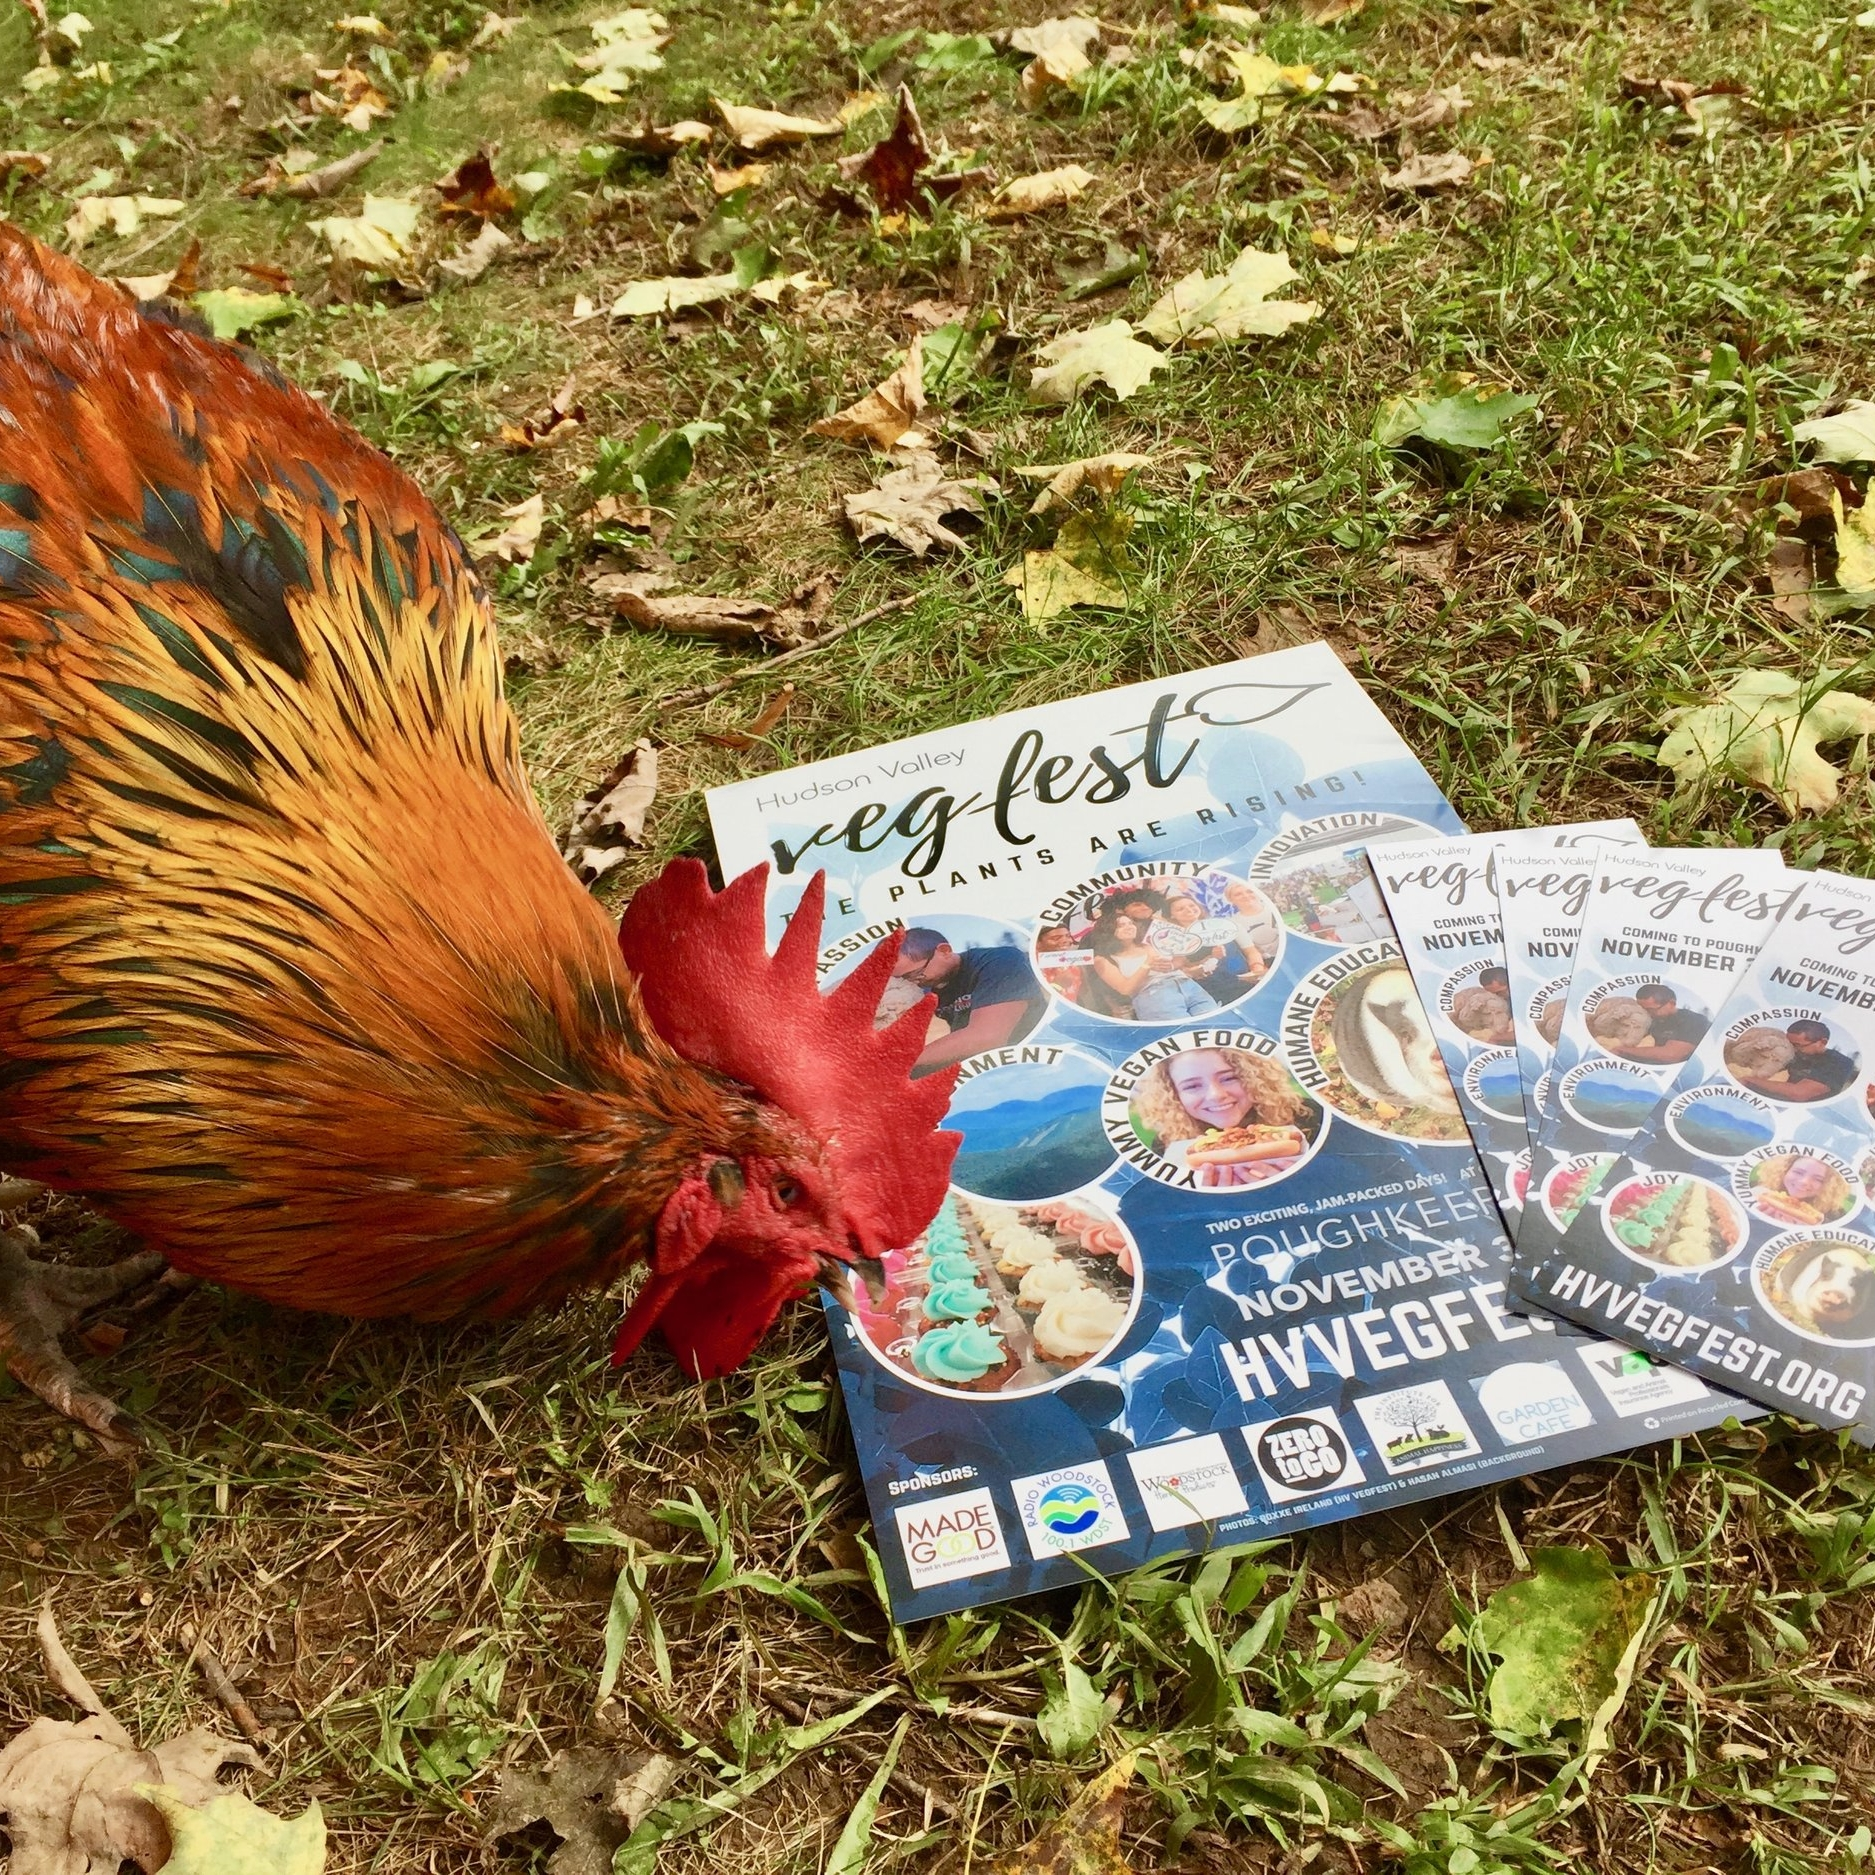 Zoltan, another rescue at The Institute, admiring the printing quality of 2018 Posters and Rack cards printed by VEGAN PRINTERS!